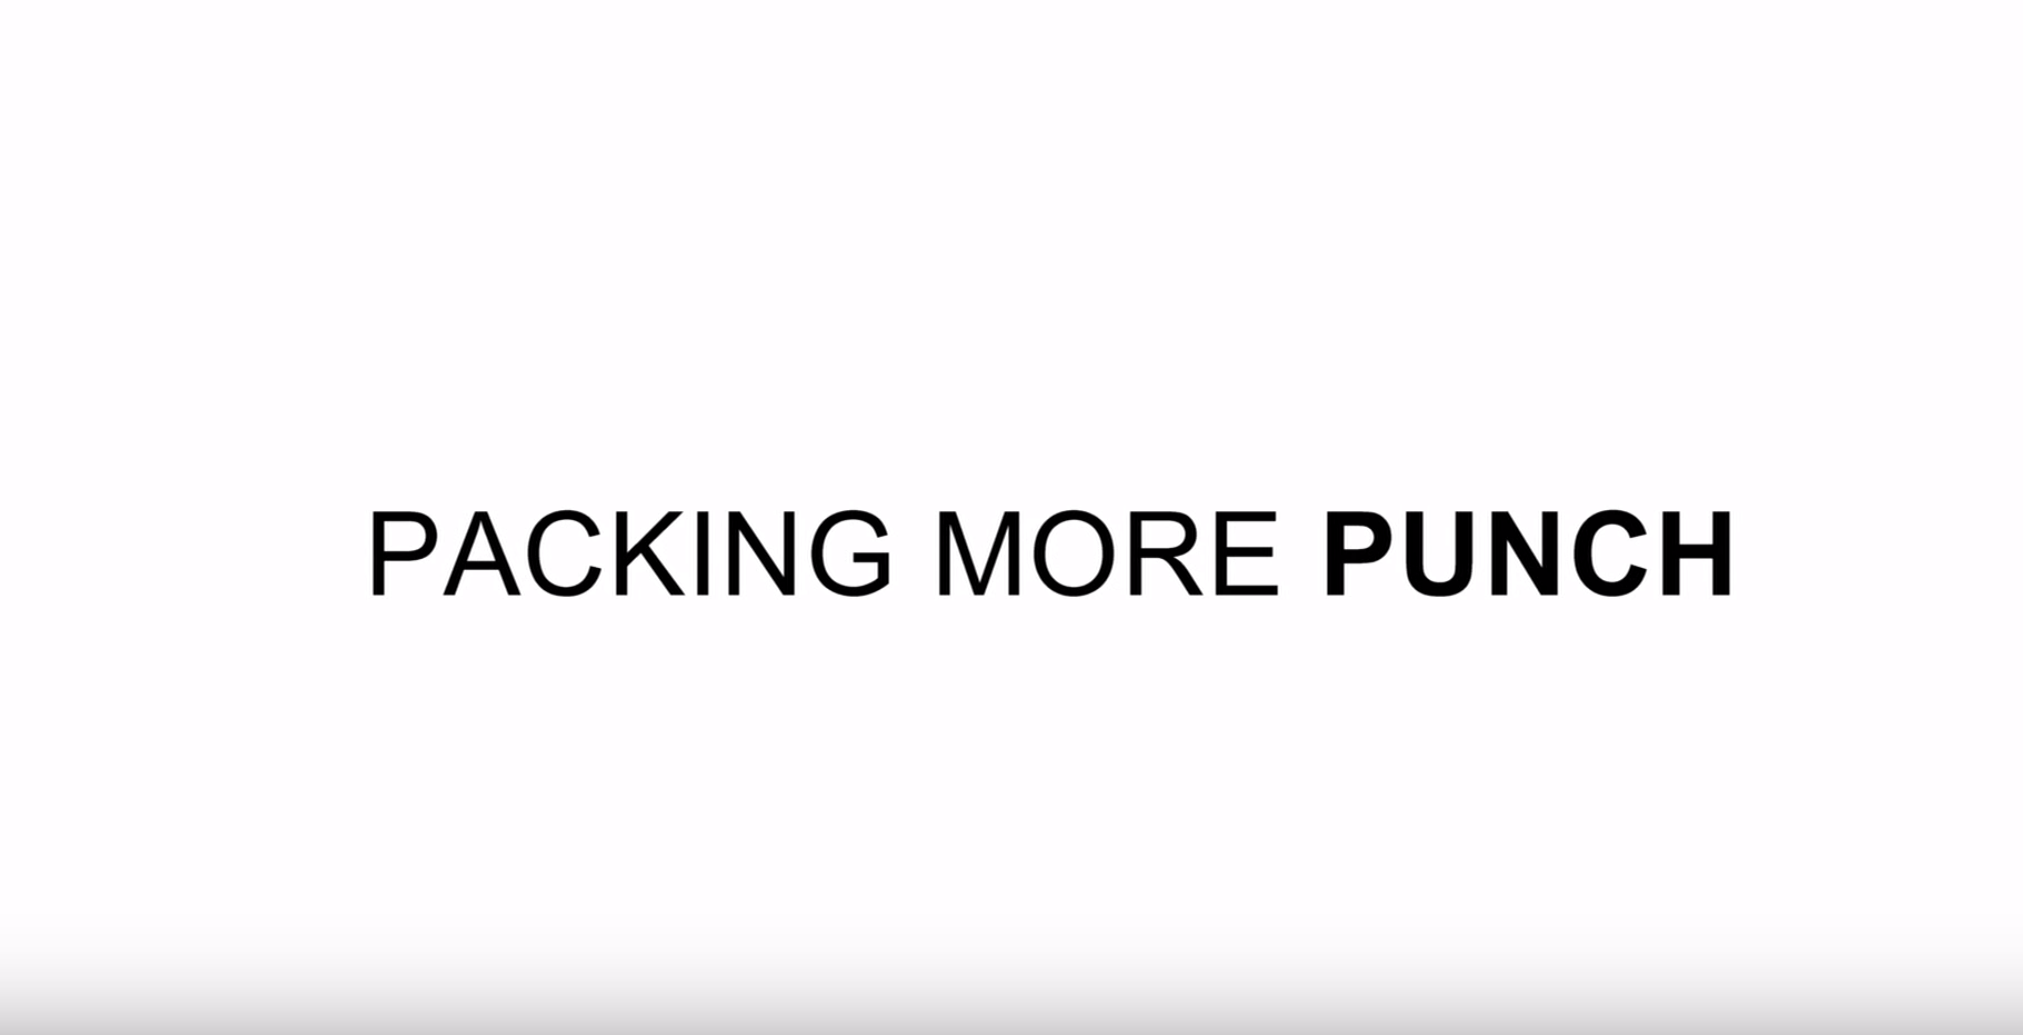 ns-packing-more-punch